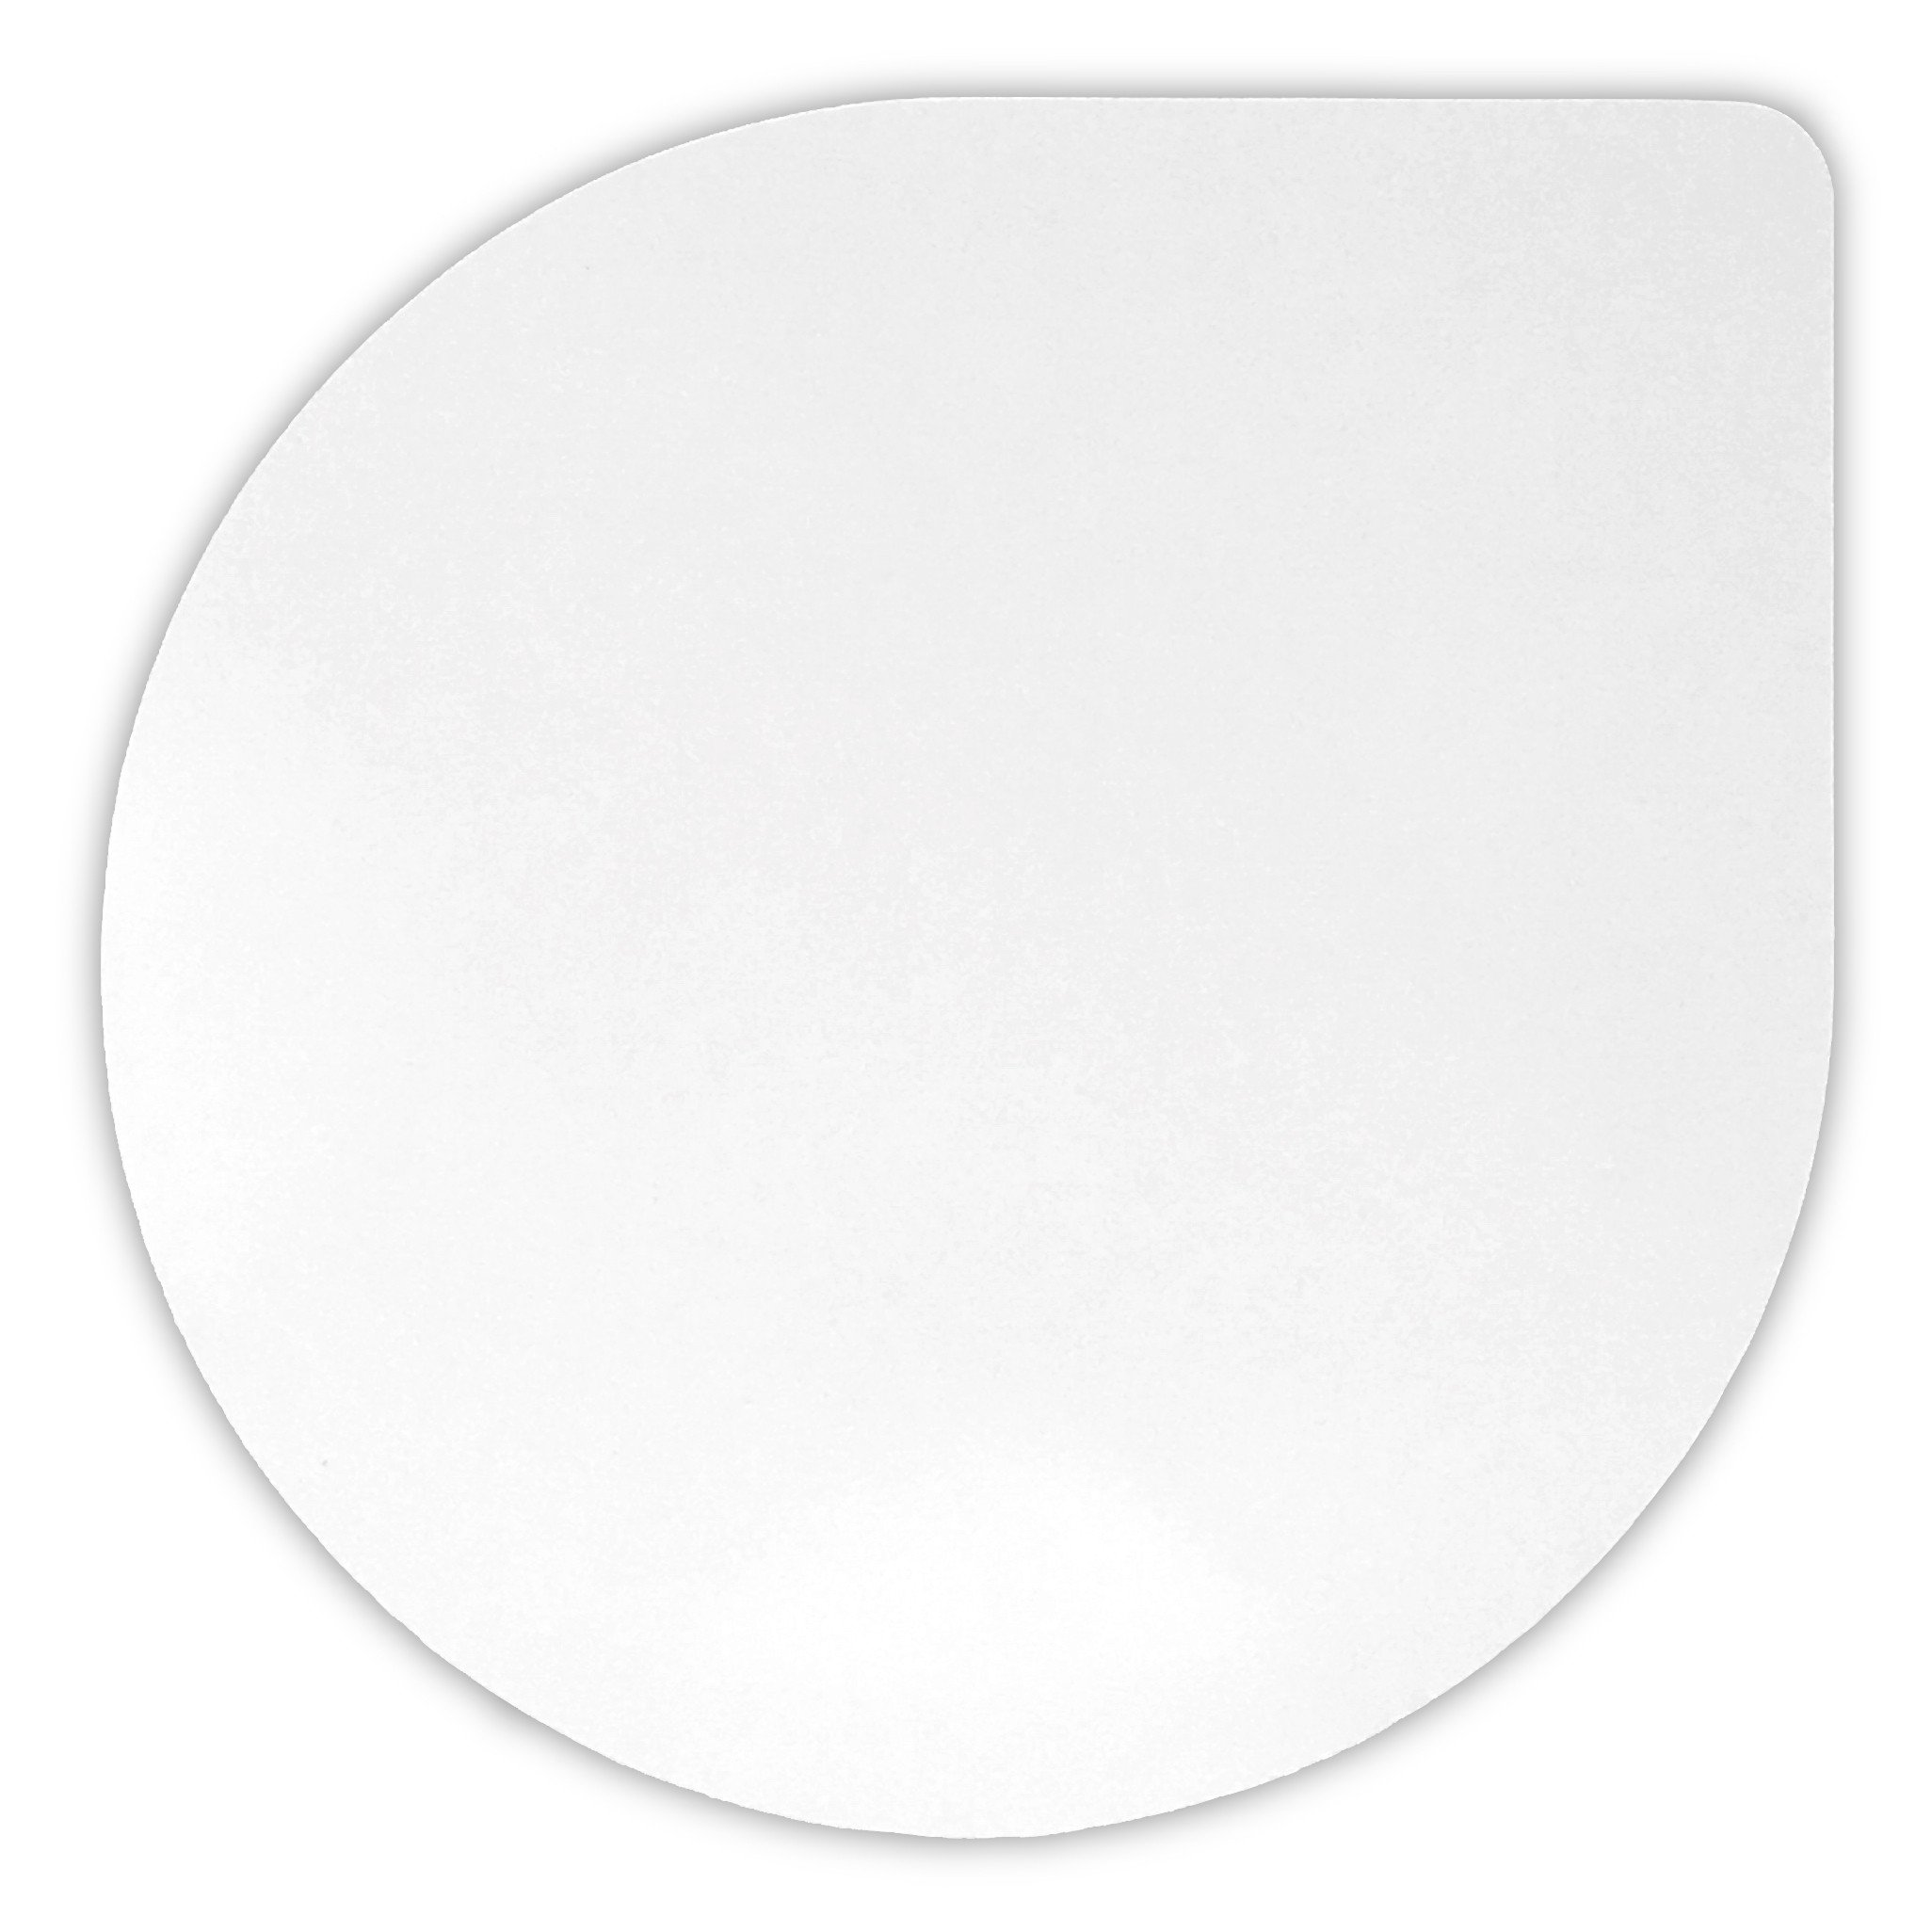 Made in USA Non-Skid Single Pet Bowl Mat in White Food Grade Silicone Rubber Large Size 2 Pack